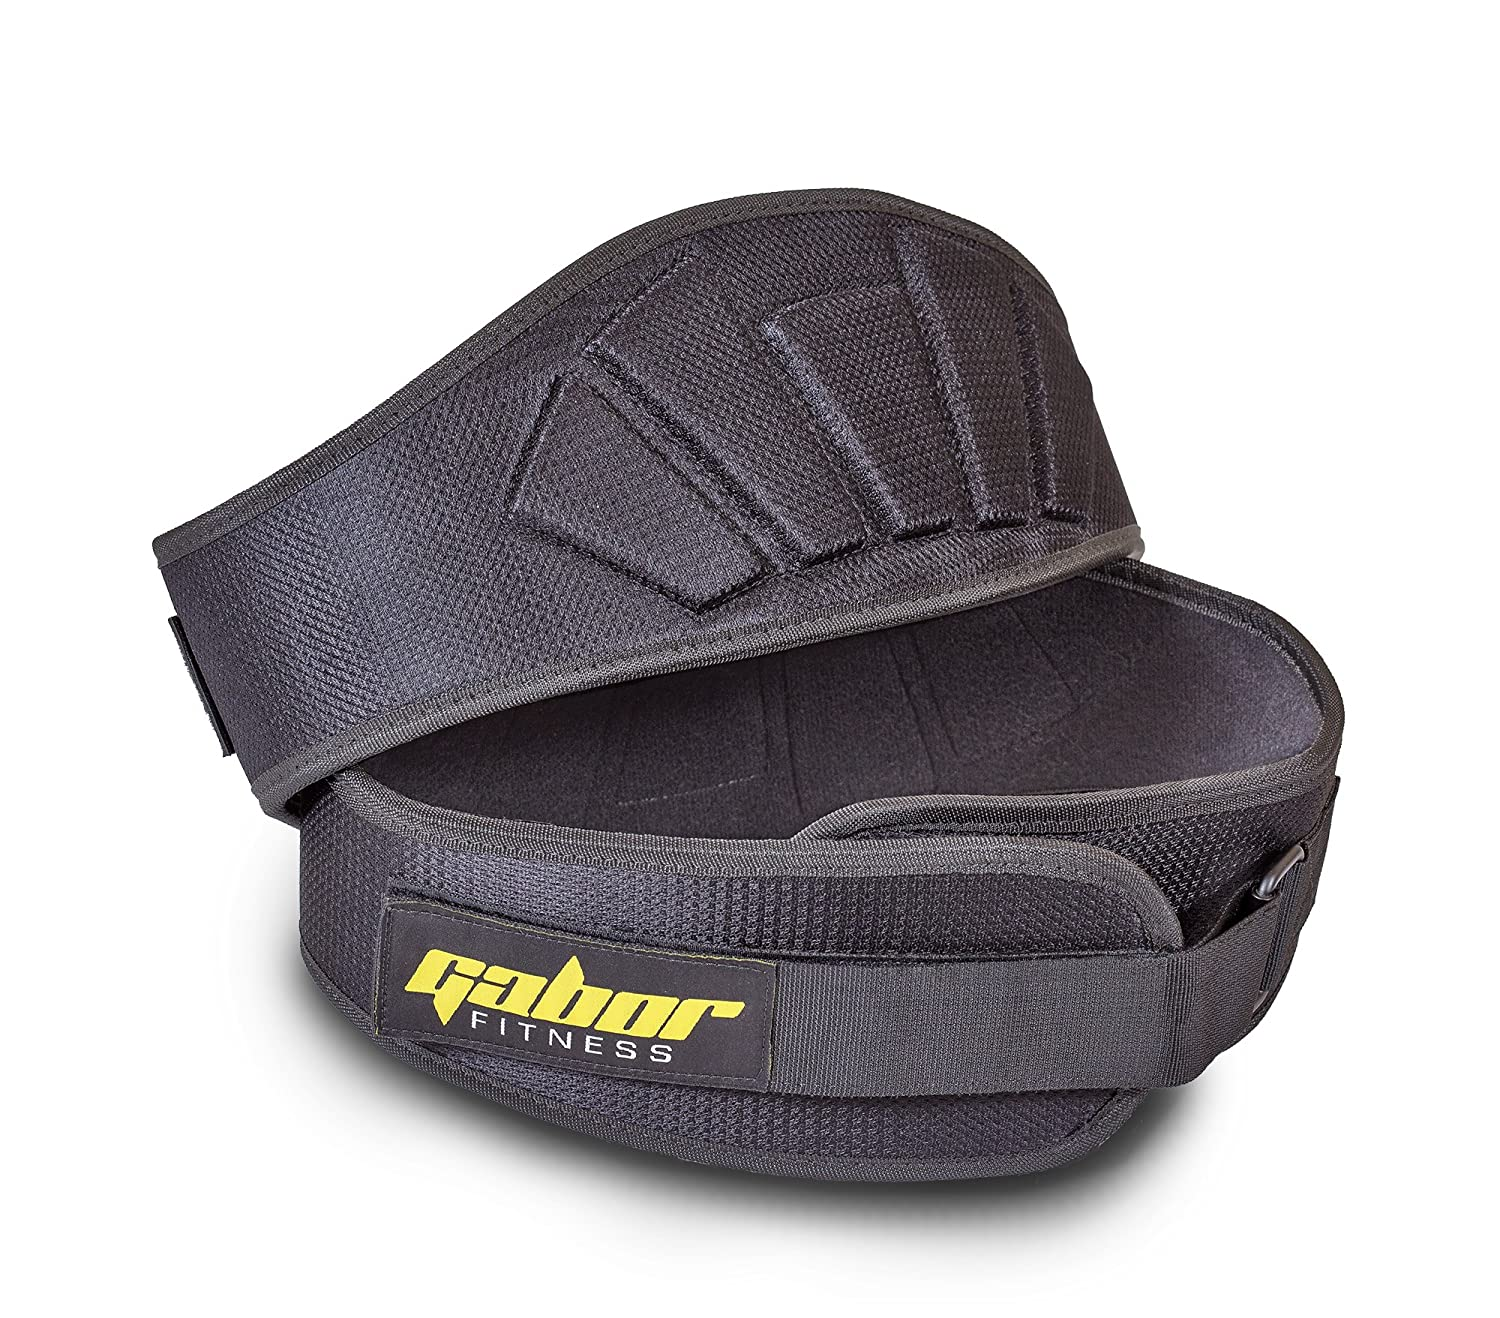 Gabor Fitness Contoured Neoprene Weight Lifting Belt